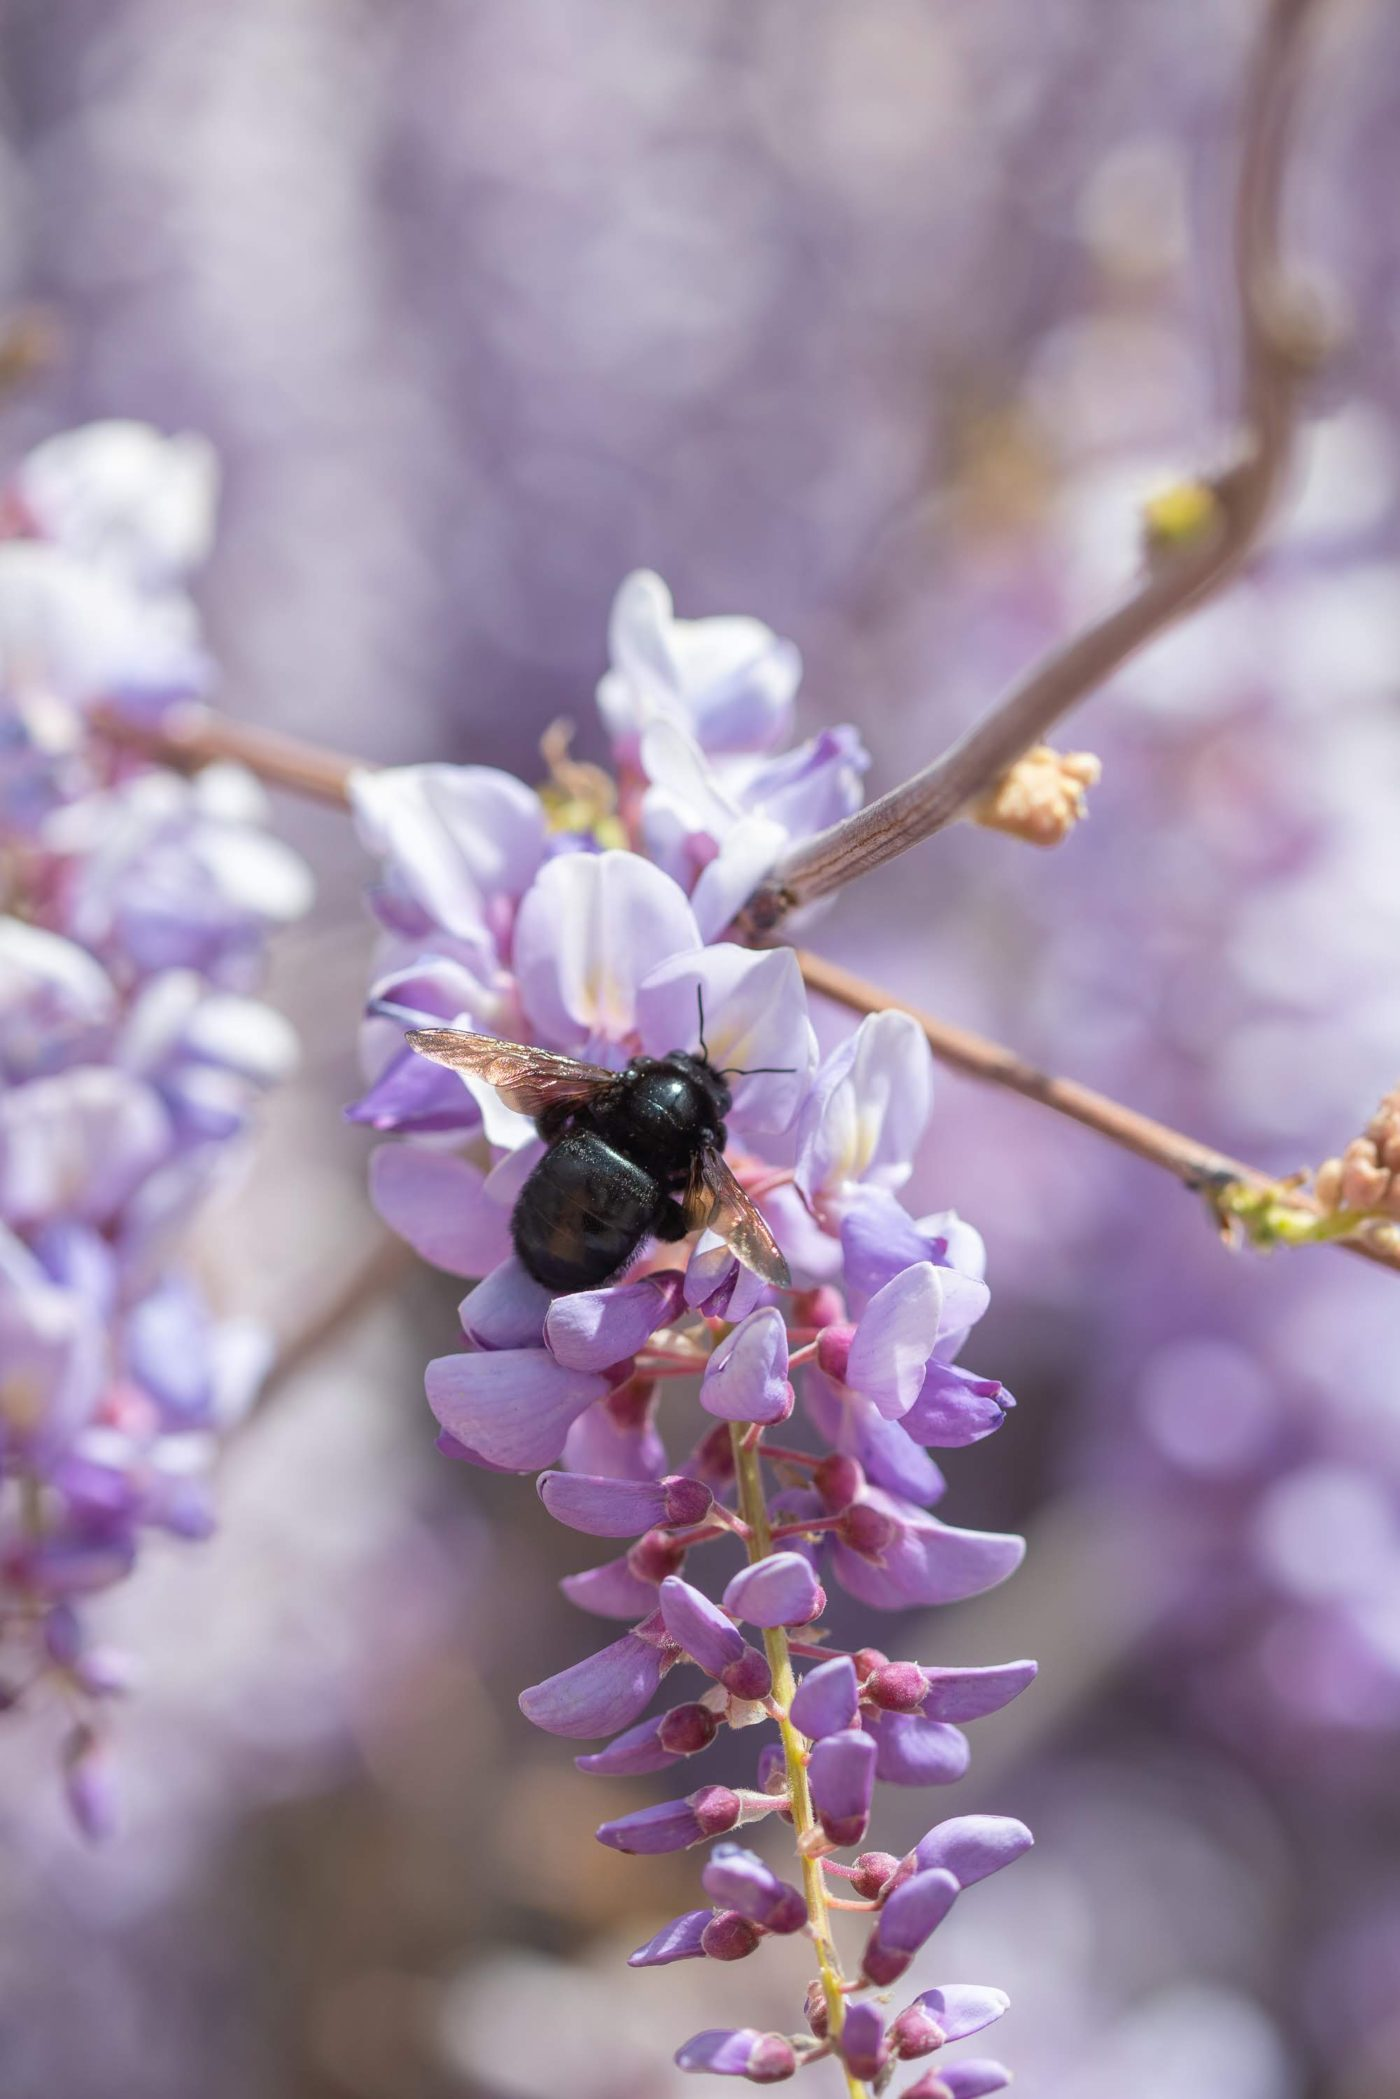 Carpenter bee on wisteria